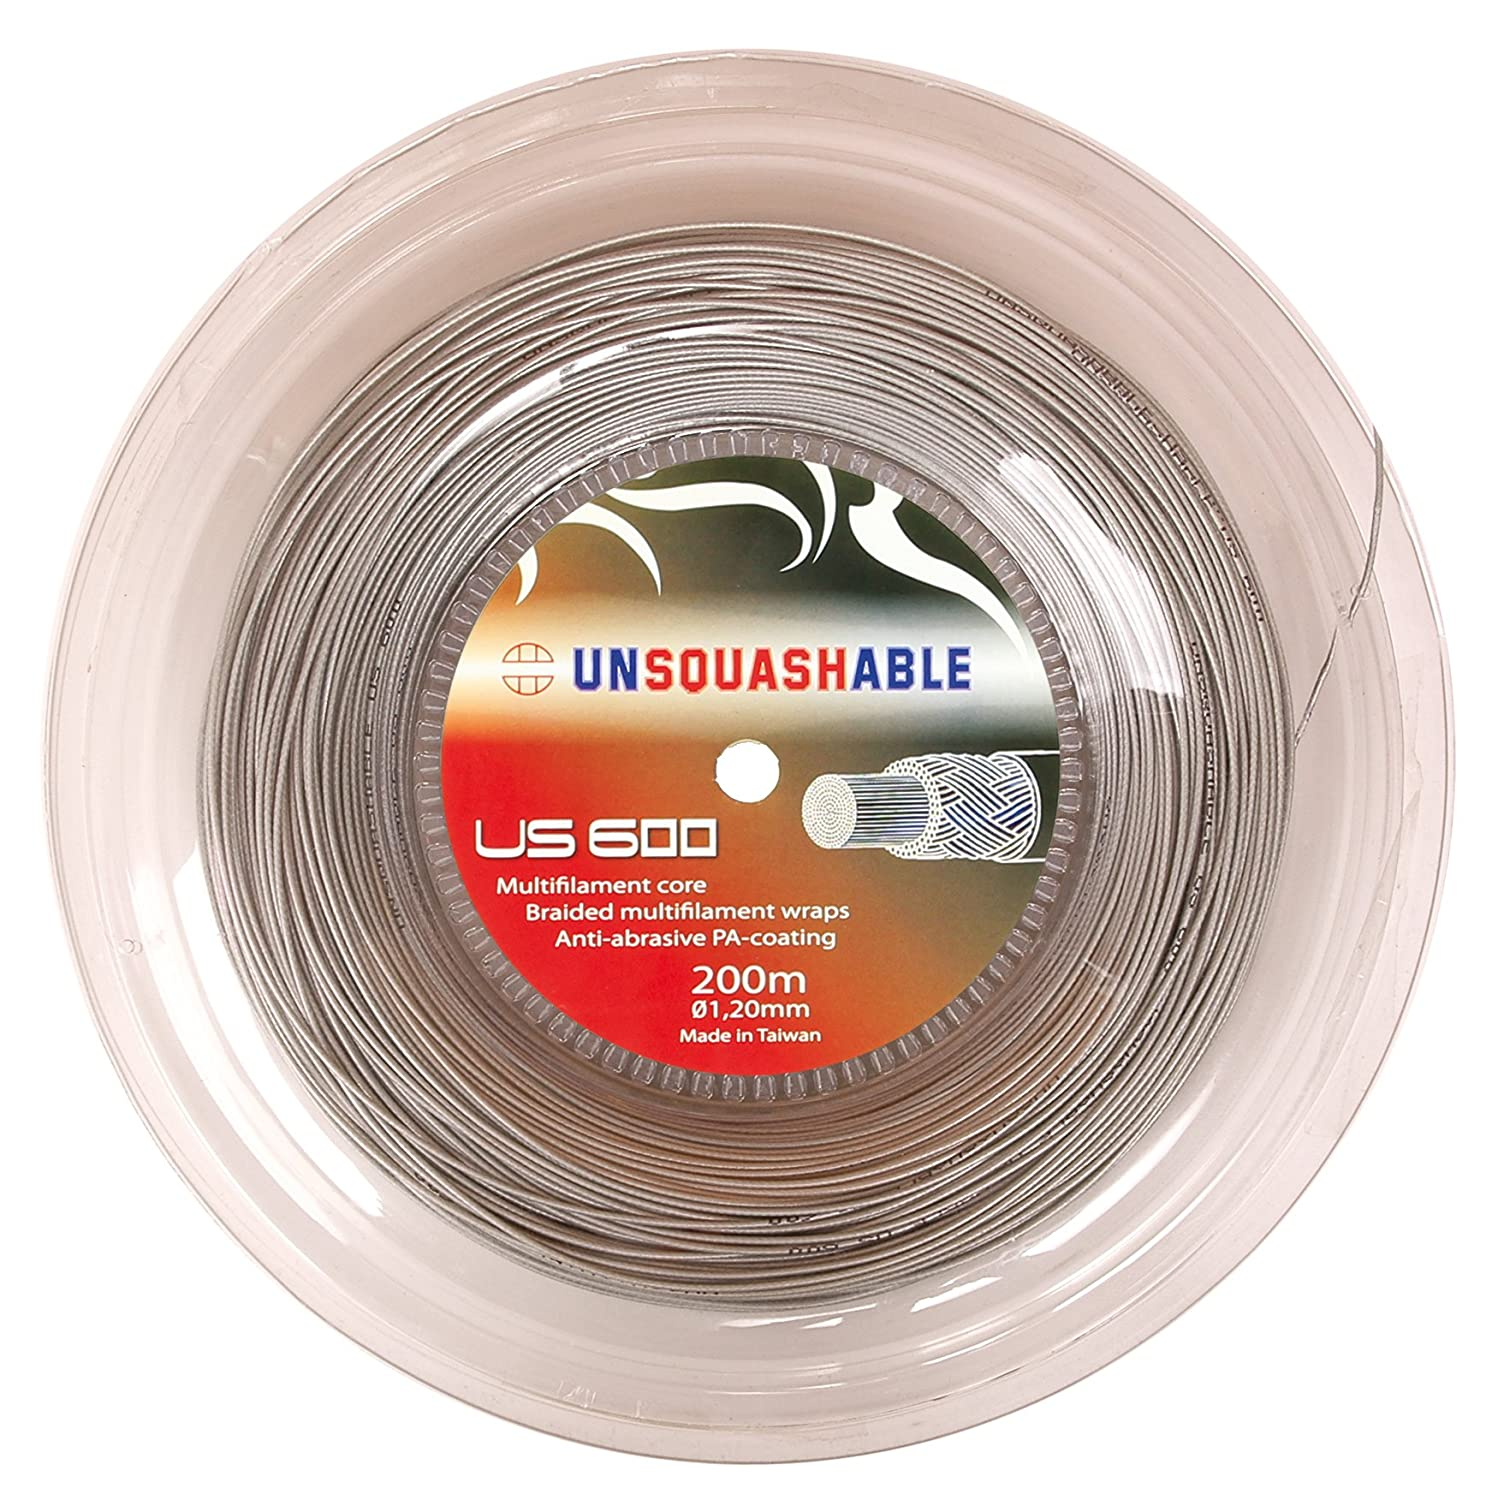 Unsquashable Power US 600 - Cuerda para raquetas de squash (200 m), color plateado 381203